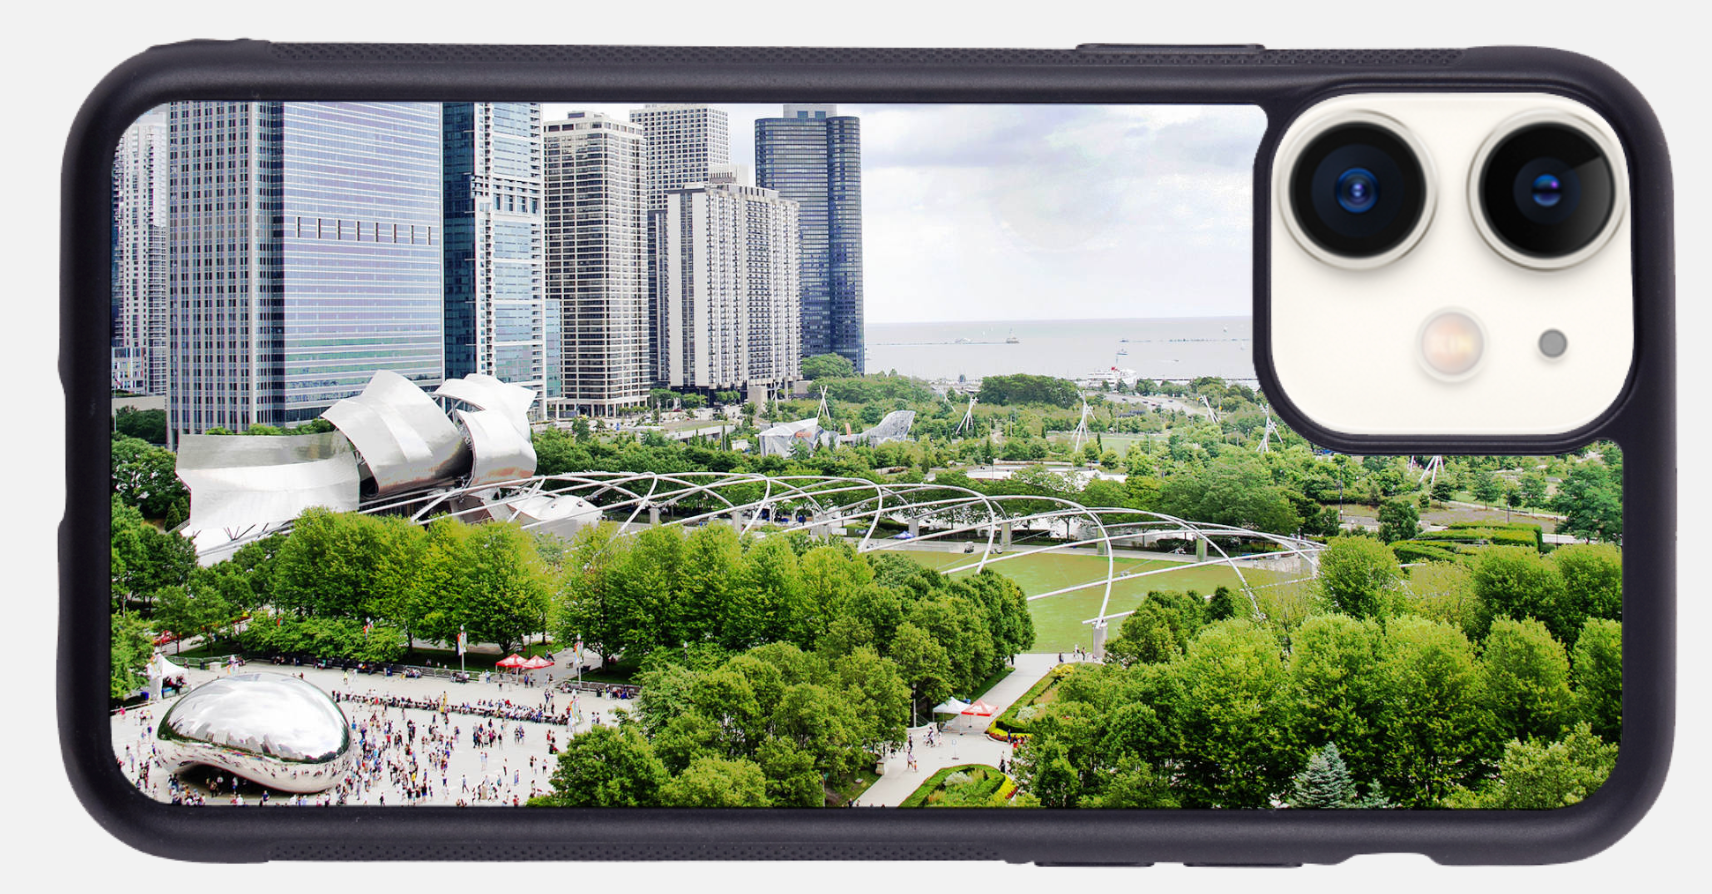 Chicago's Millennium Park, The Bean 7120 Phone Case